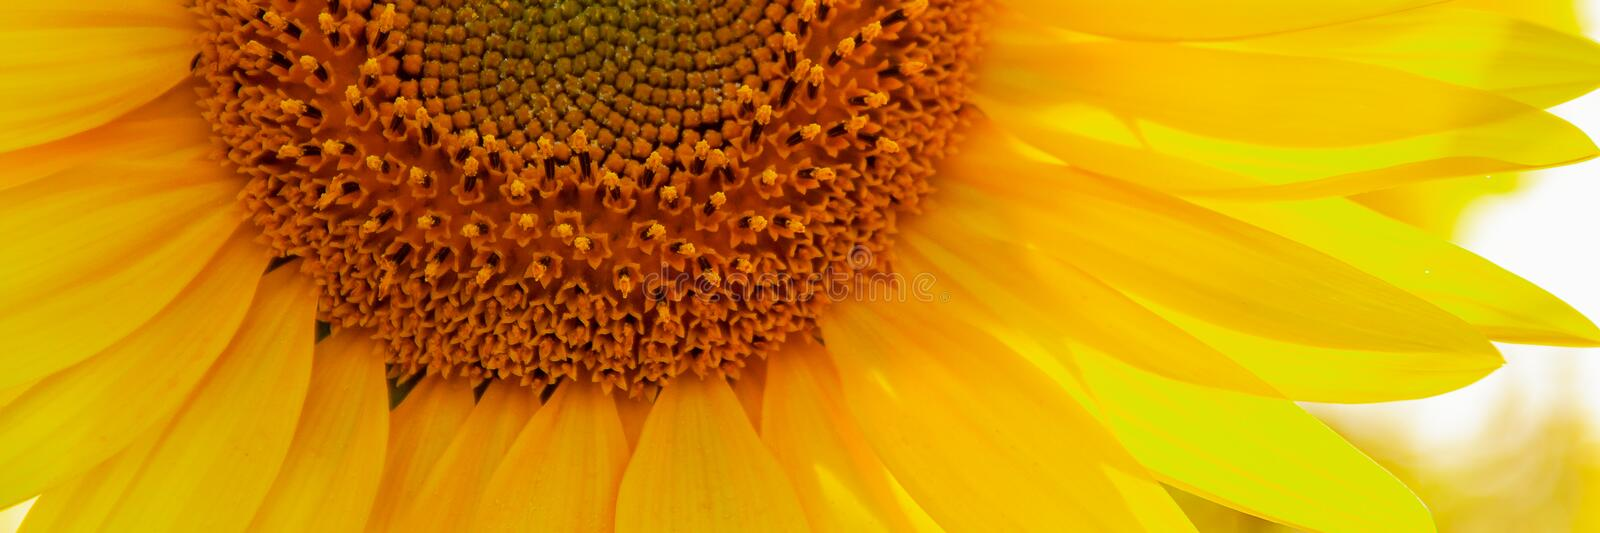 Sunflower natural background, Sunflower blooming, close up stock photos